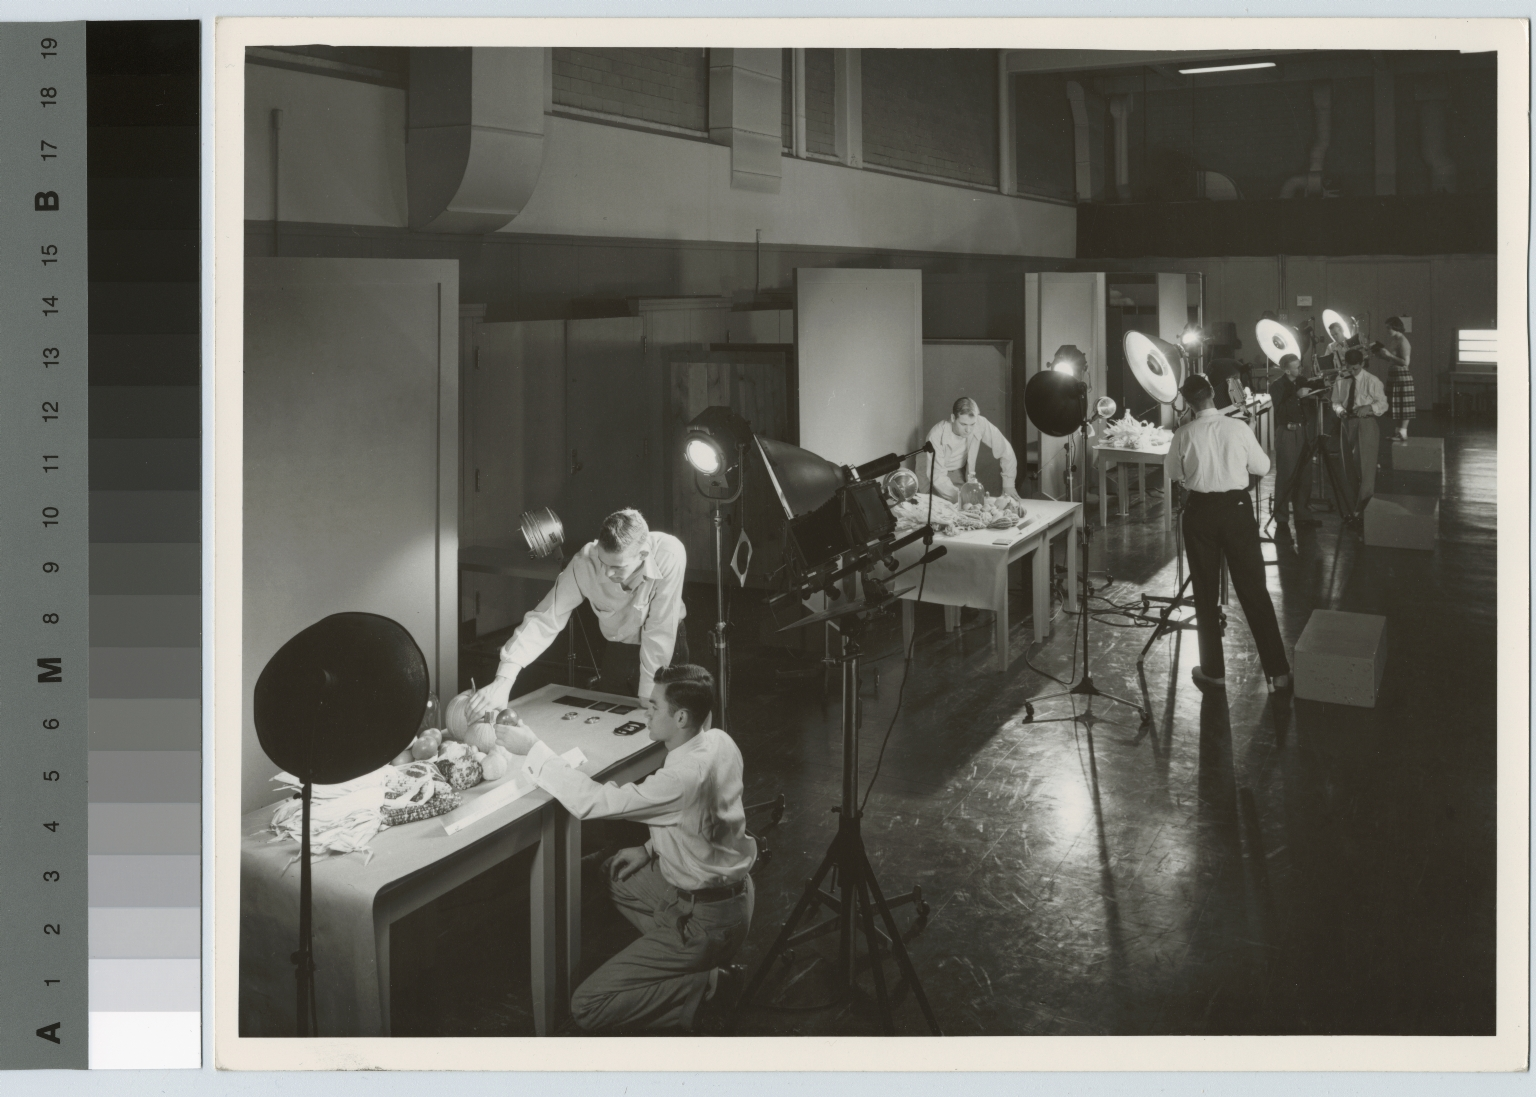 Students work on studio assignment, Department of Photographic Technology, Rochester Institute of Technology